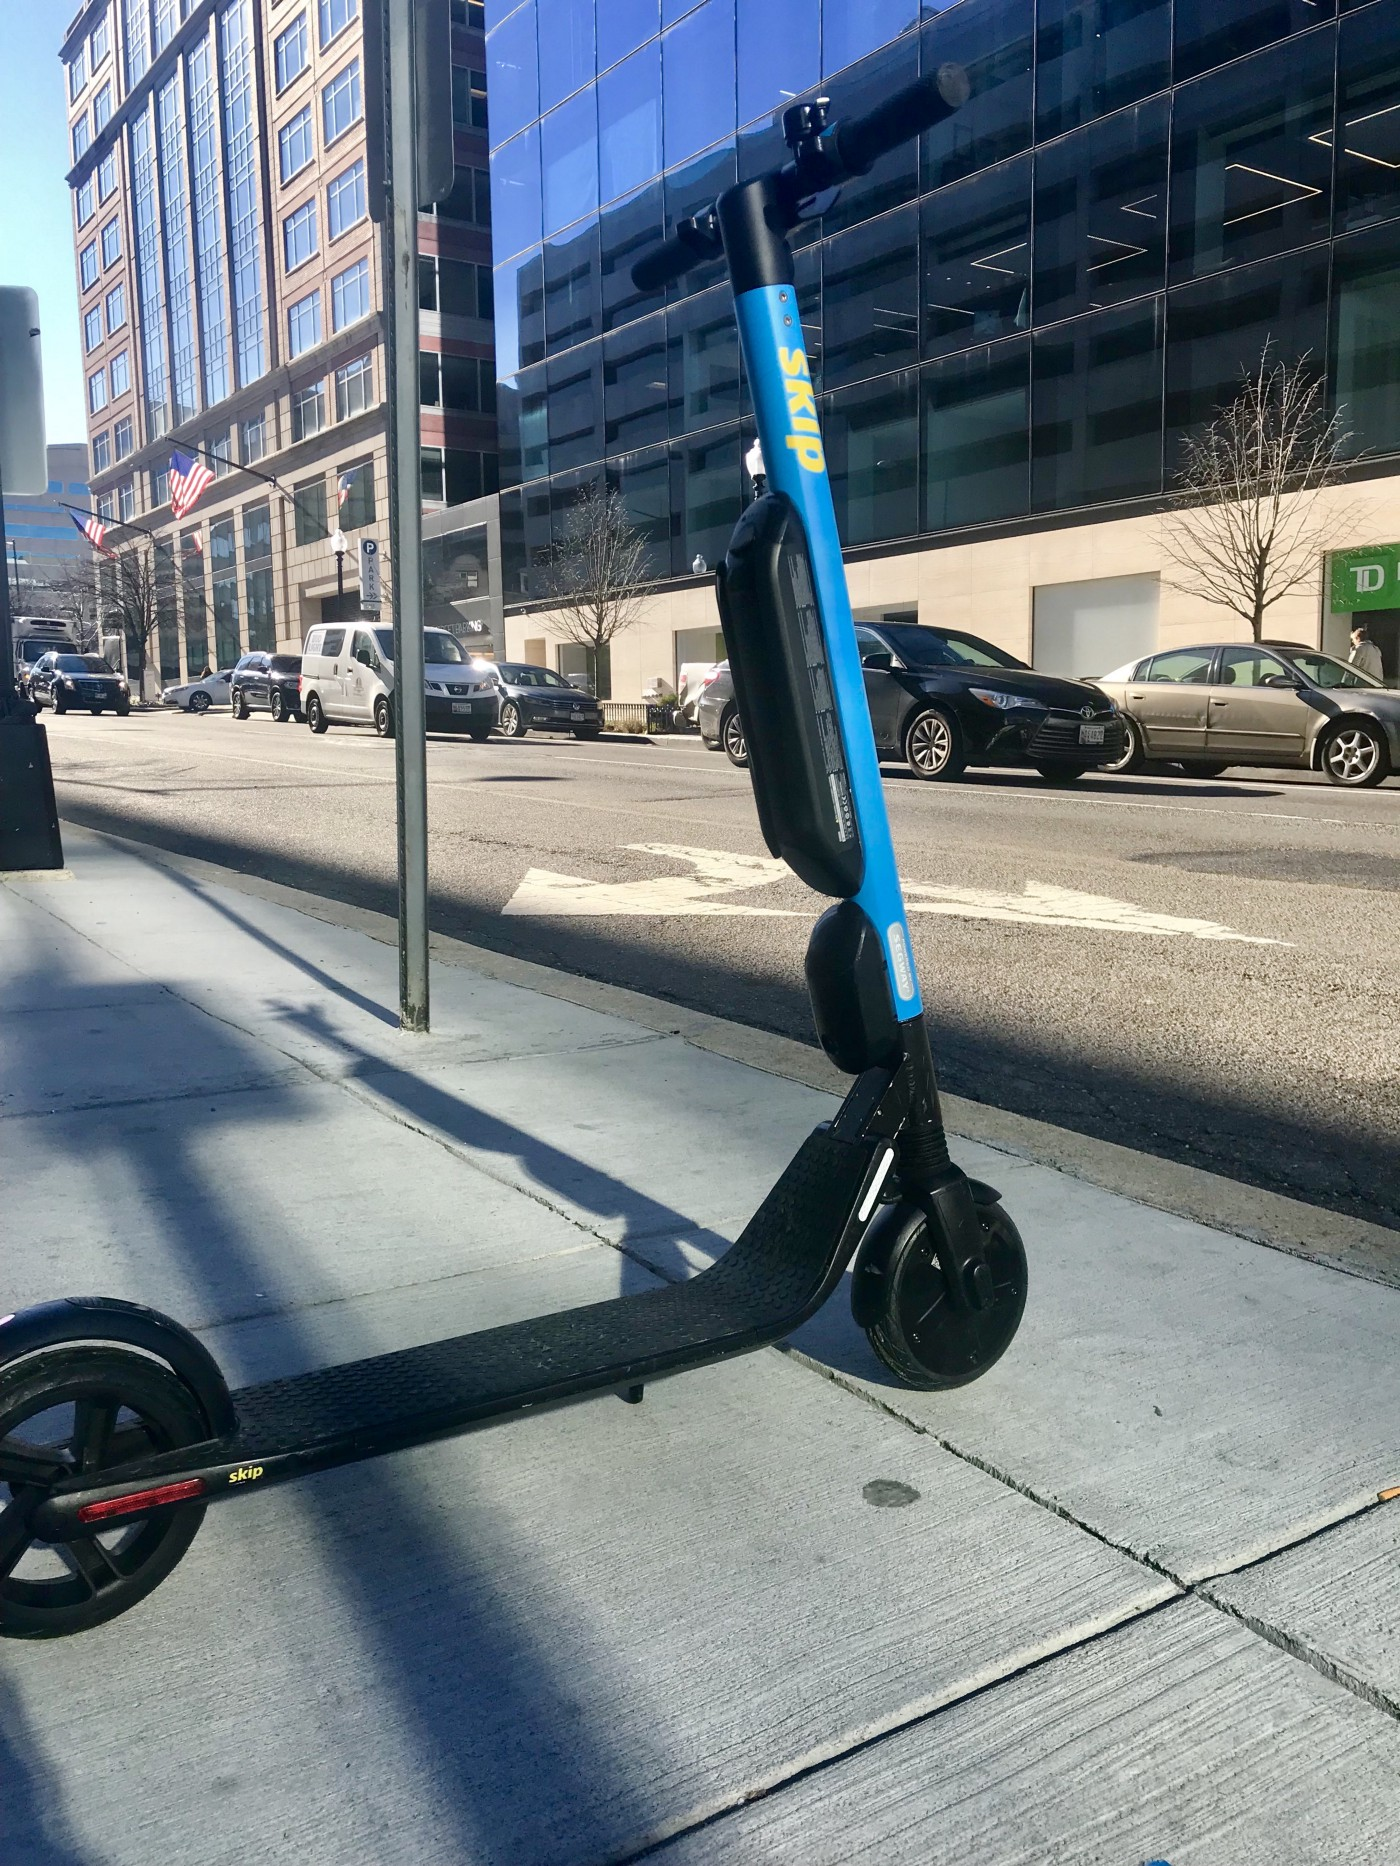 Sensing for Safety: How Skip Uses Cameras to Make Scooters Smarter